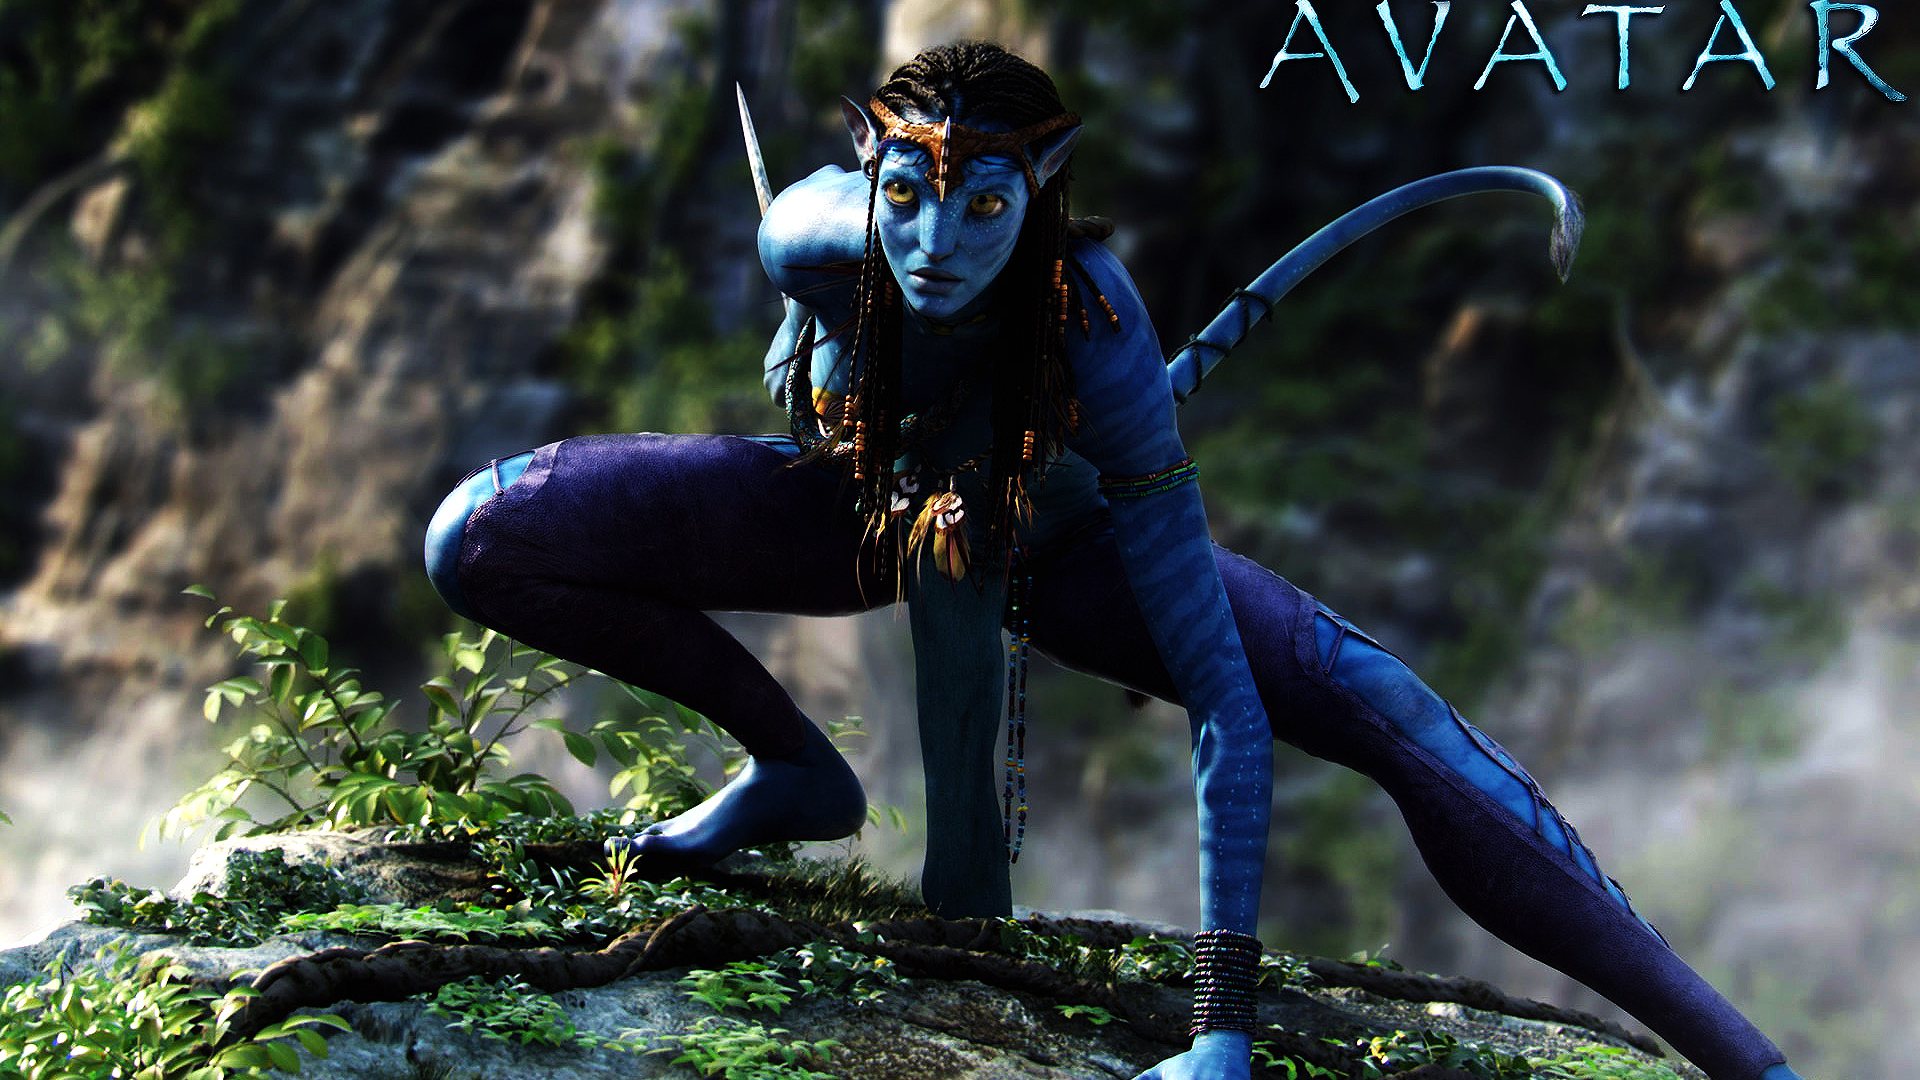 Free Download Avatar Movie Wallpapers Full Hd Wallpaper Search 21st